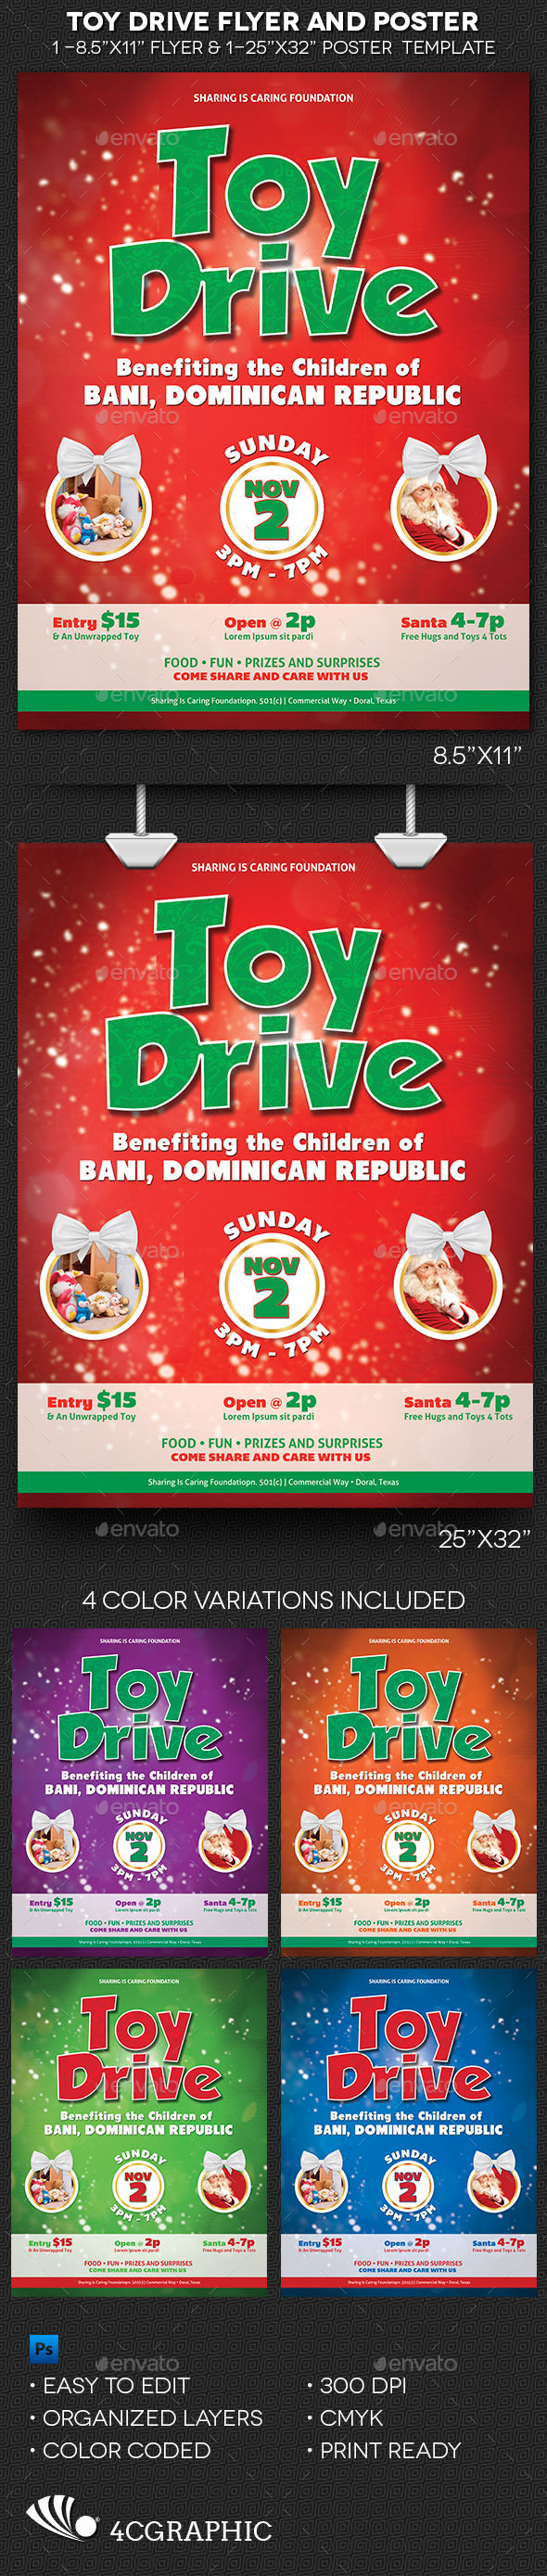 Toy Drive Flyer and Poster Template  - Holidays Events